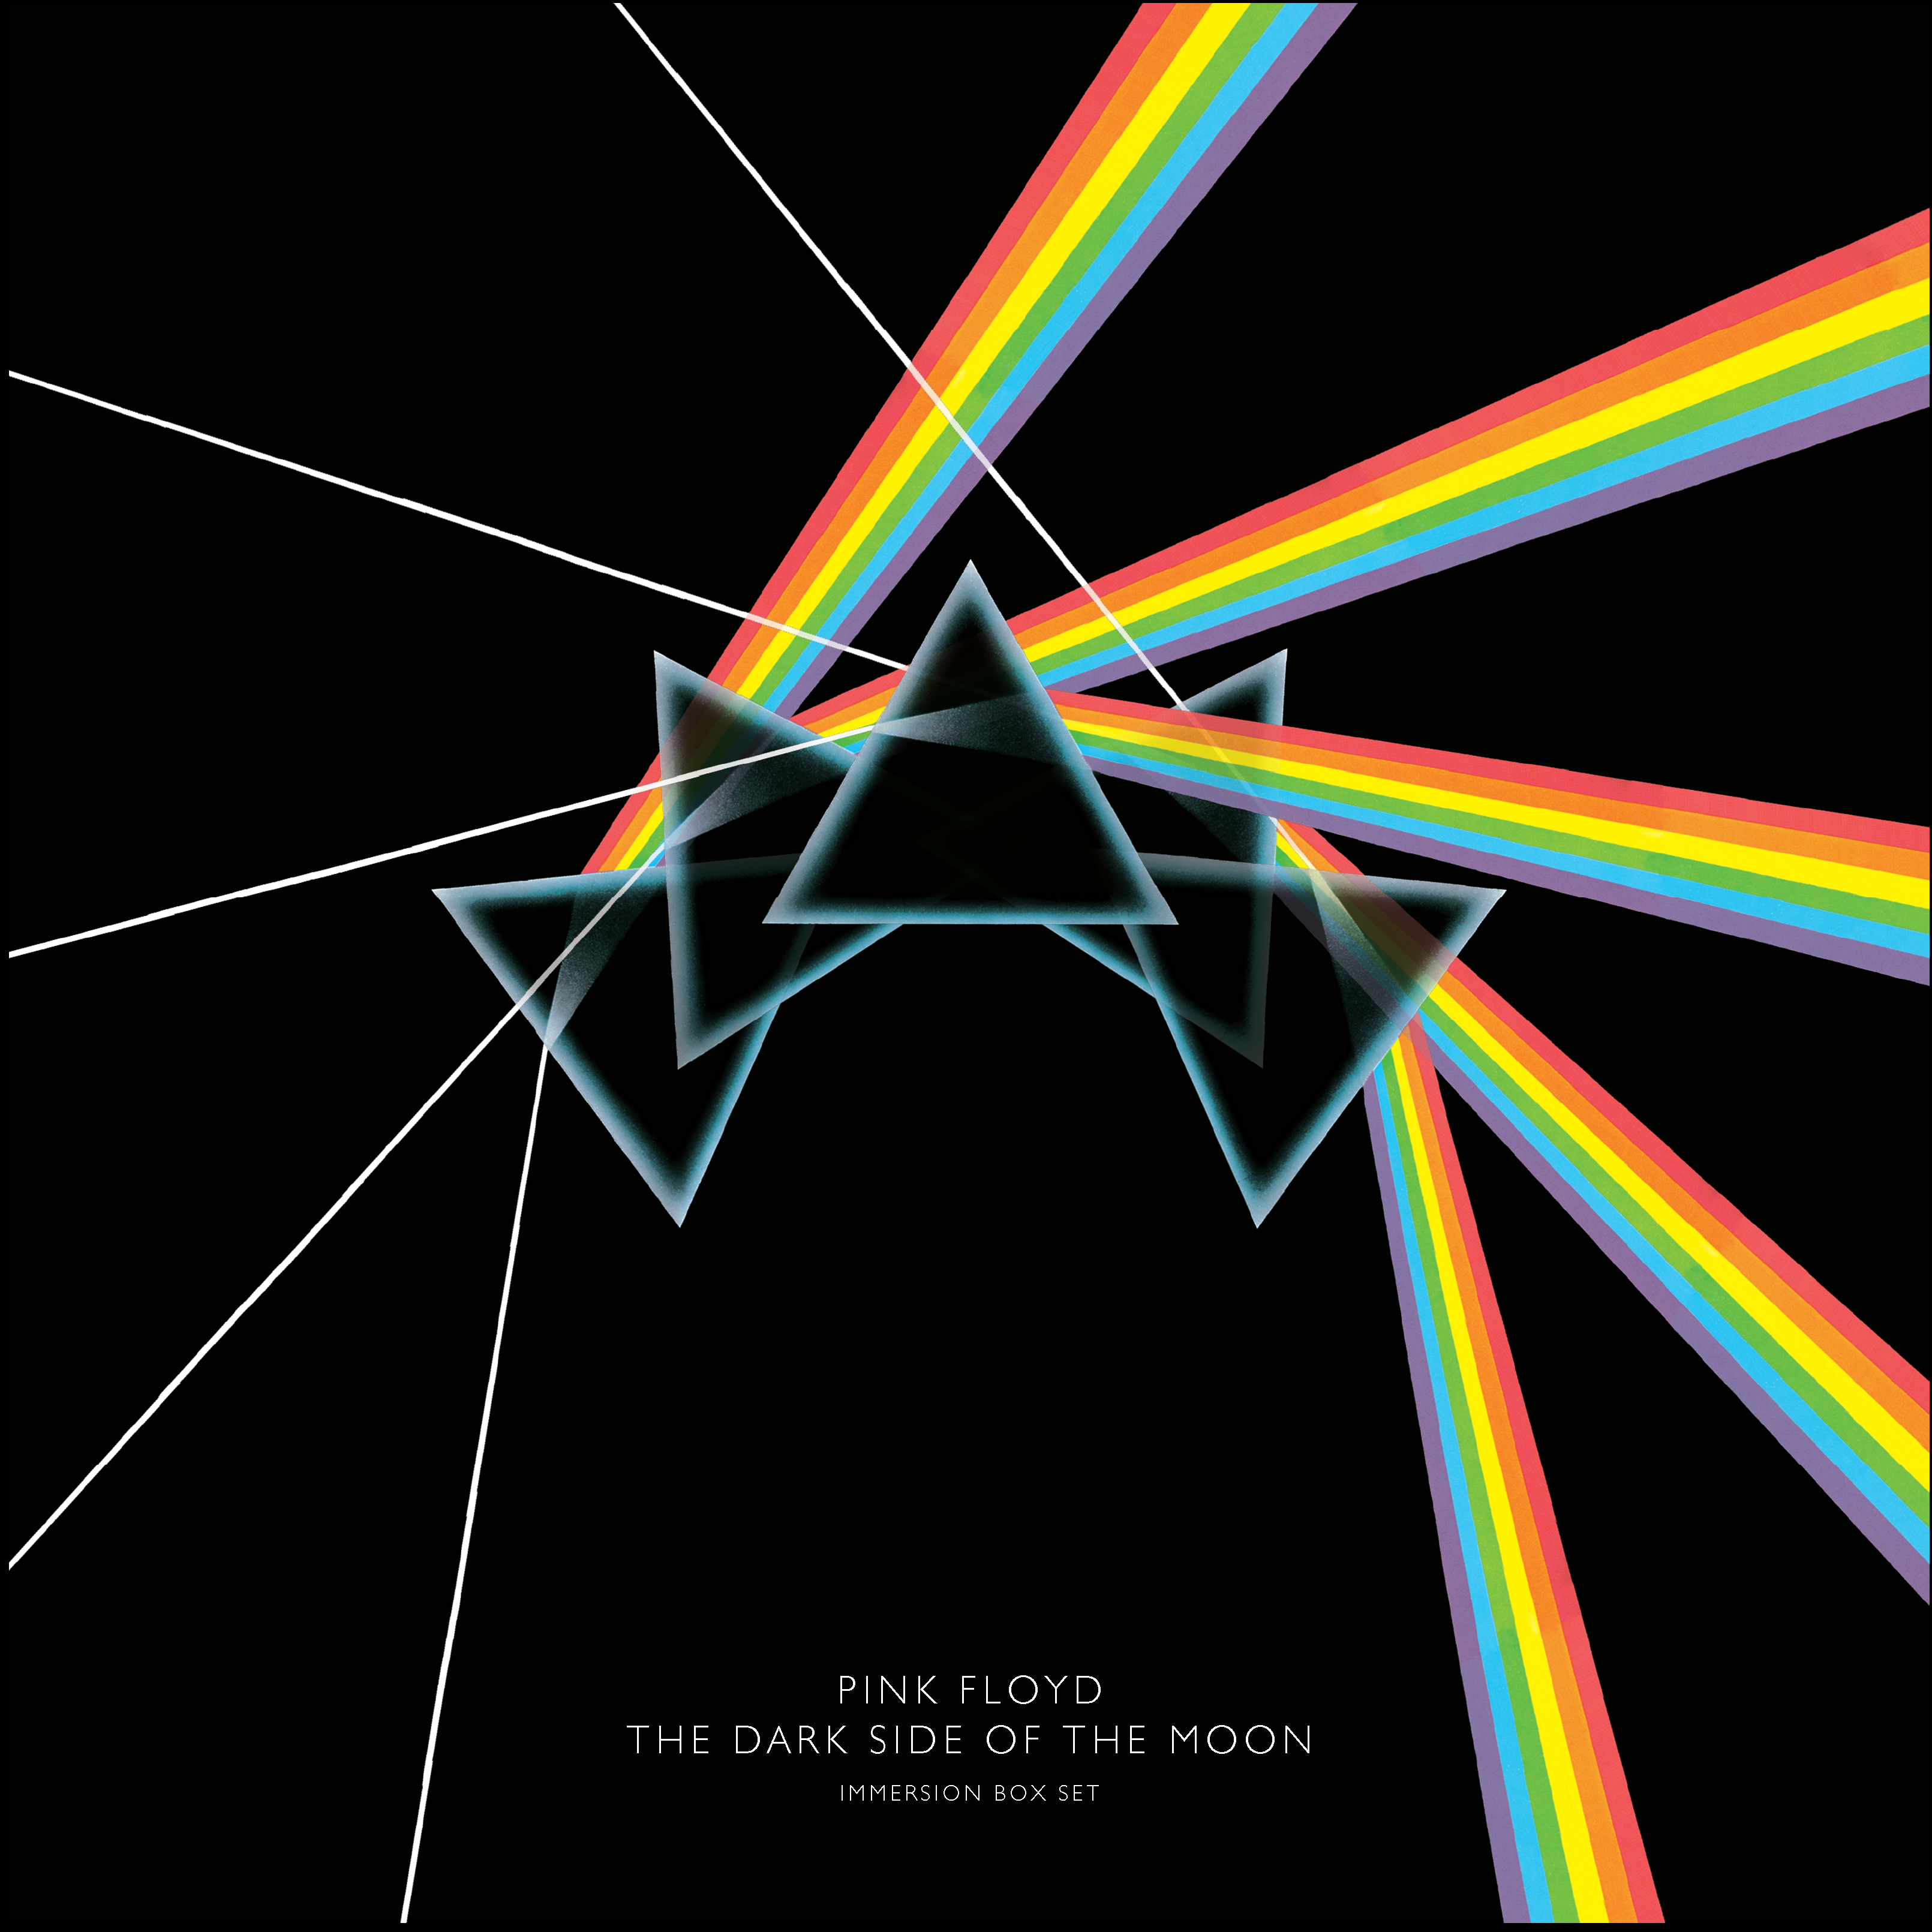 iphone wallpaper pink floyd